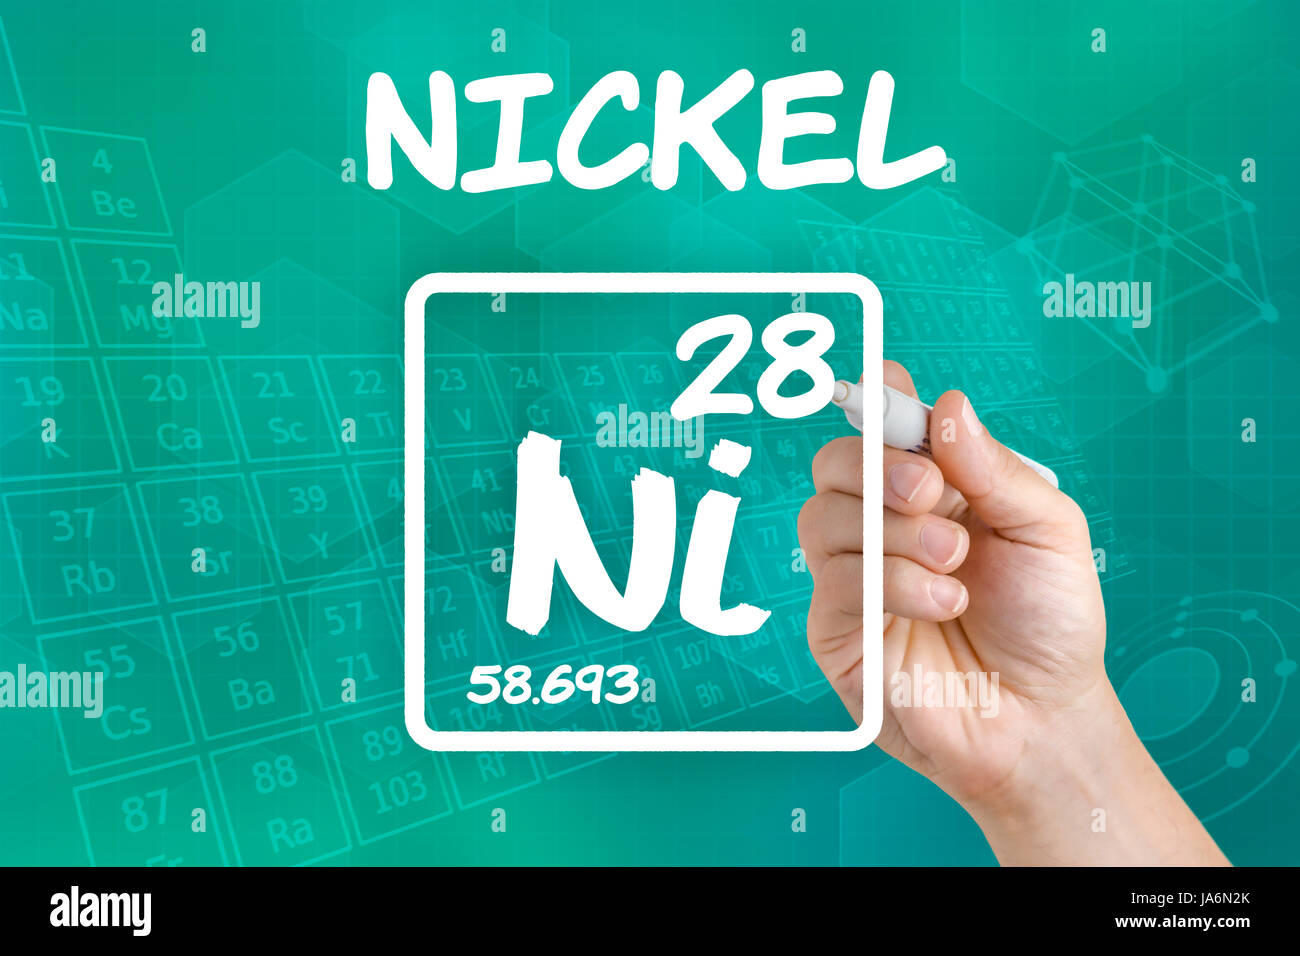 Symbol of the chemical element nickel stock photo royalty free symbol of the chemical element nickel gamestrikefo Gallery